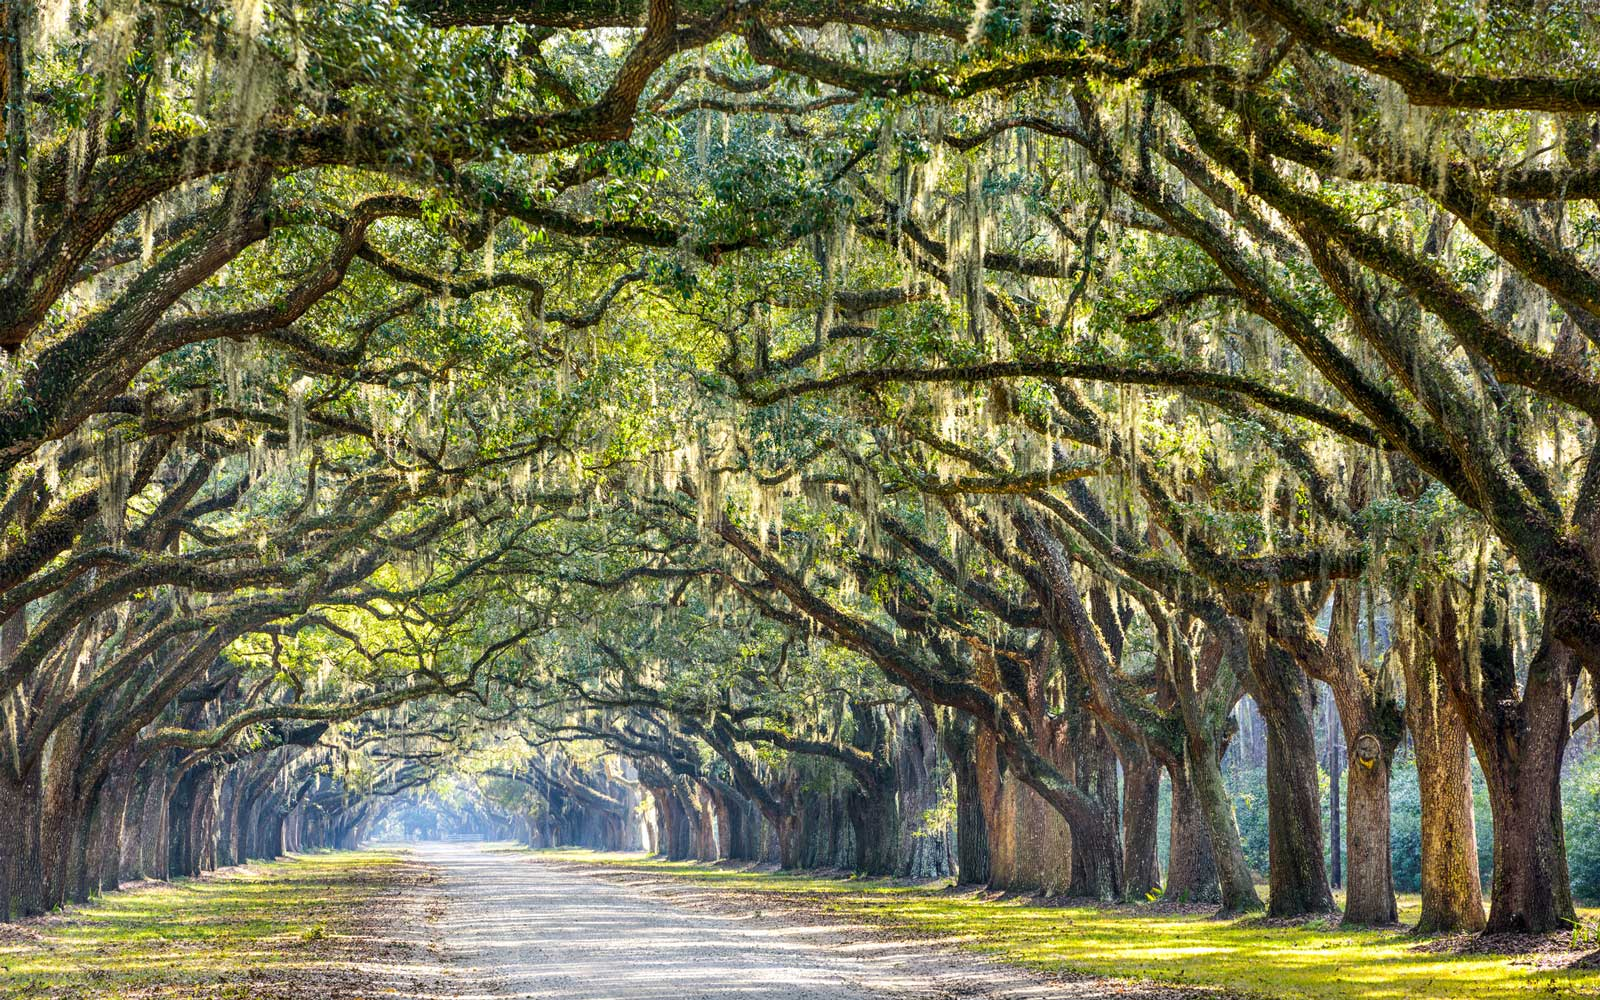 Savannah, Georgia oak tree lined road at historic Wormsloe Plantation.